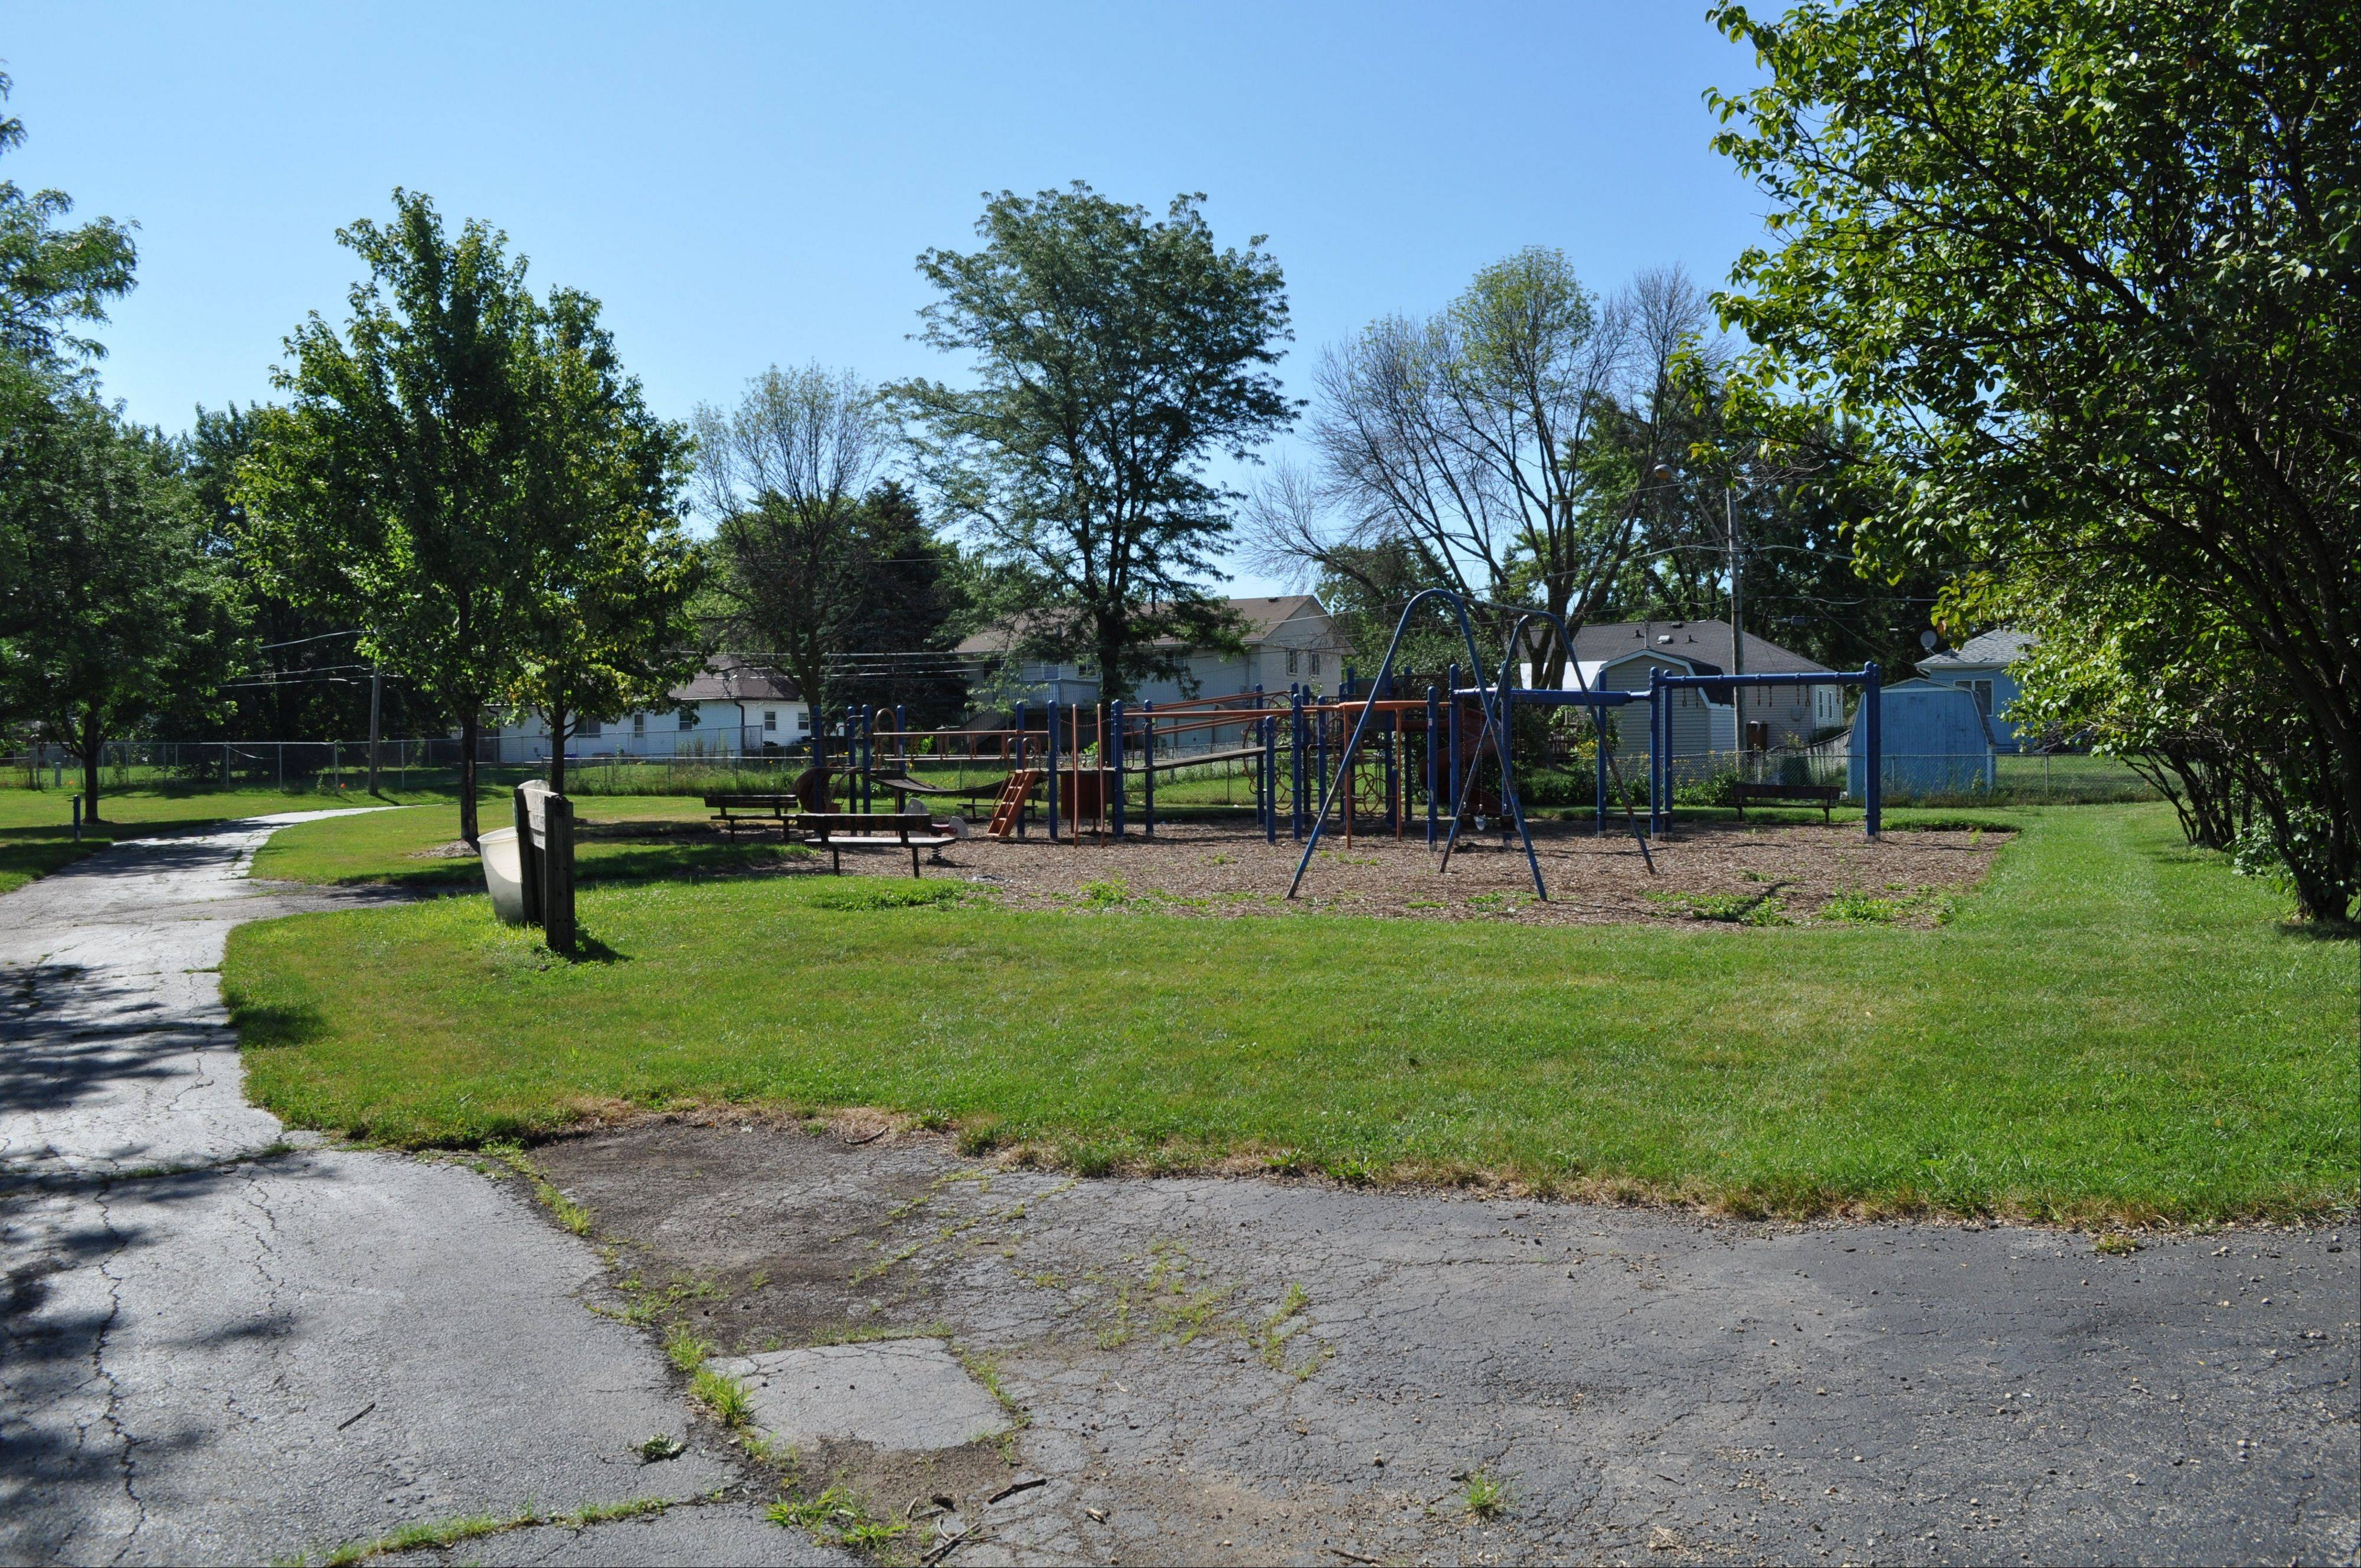 Lacy Park, located at 735 Stowel Ave. in Streamwood, has a new owner Hanover Township. The 2.6-acre park is comprised of a playground, walking and bike paths, and an activity field.